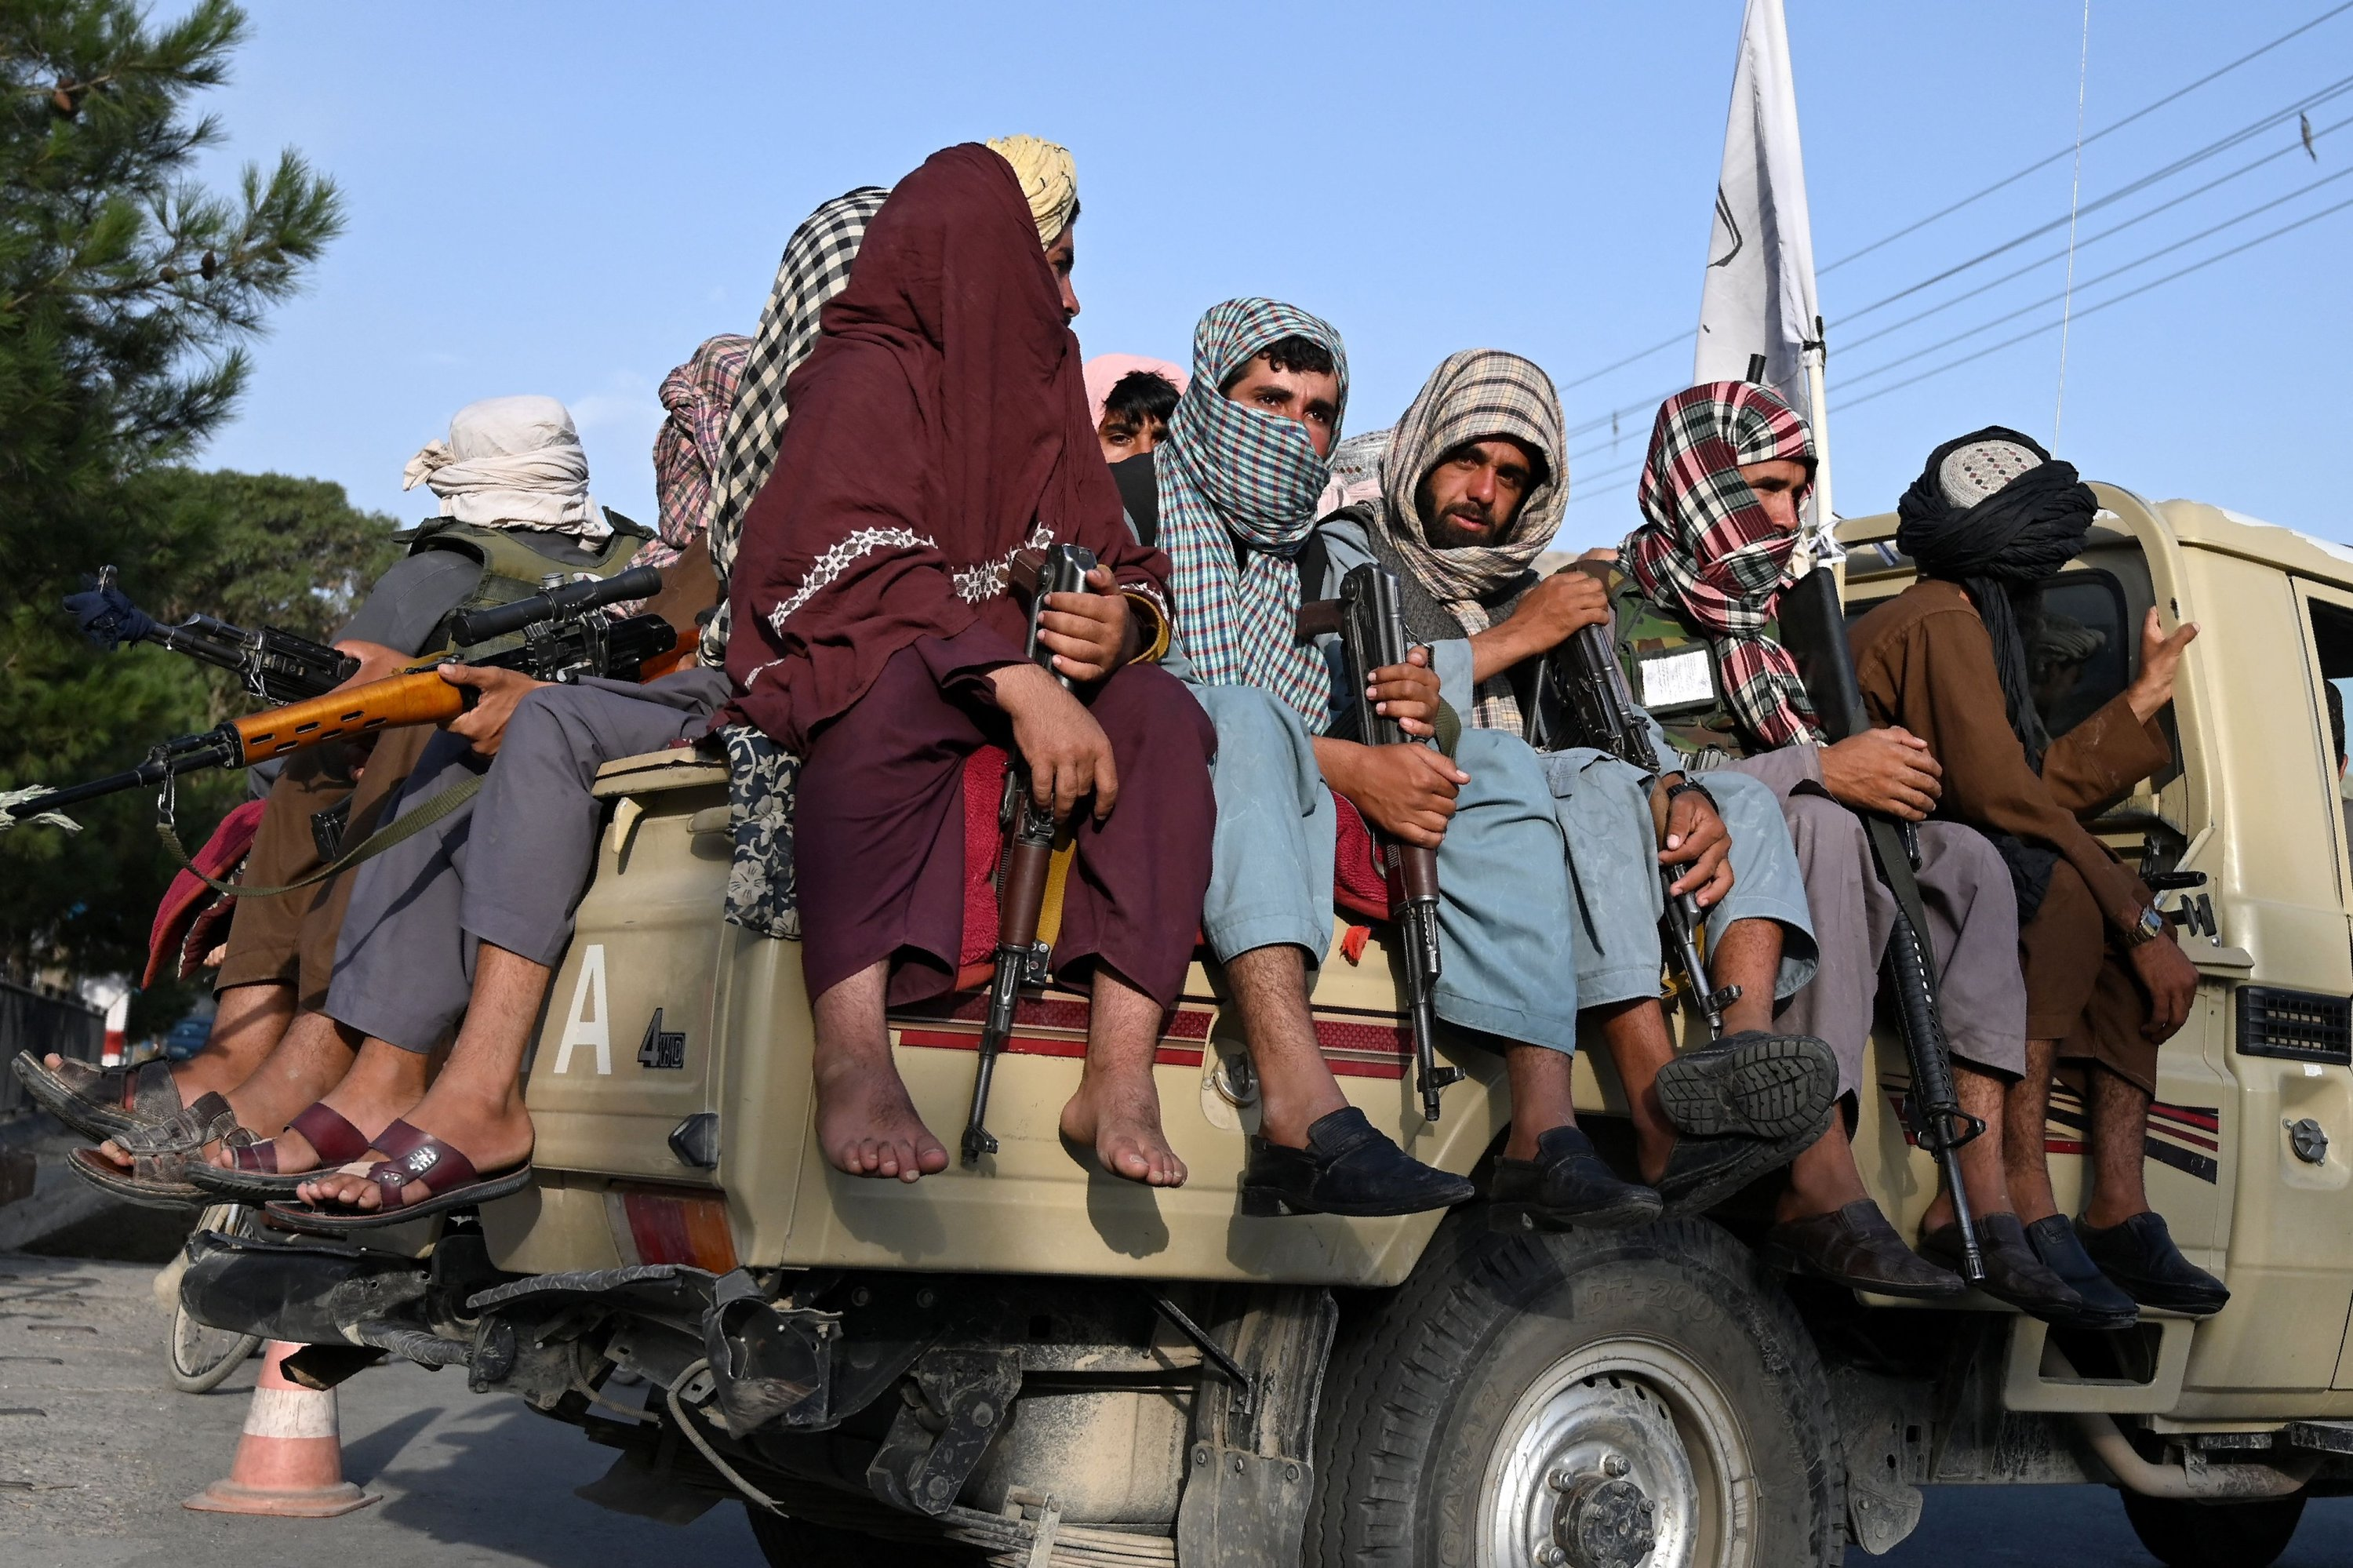 Taliban fighters in a vehicle patrol the streets of Kabul, Afghanistan, Aug. 23, 2021. (AFP Photo)